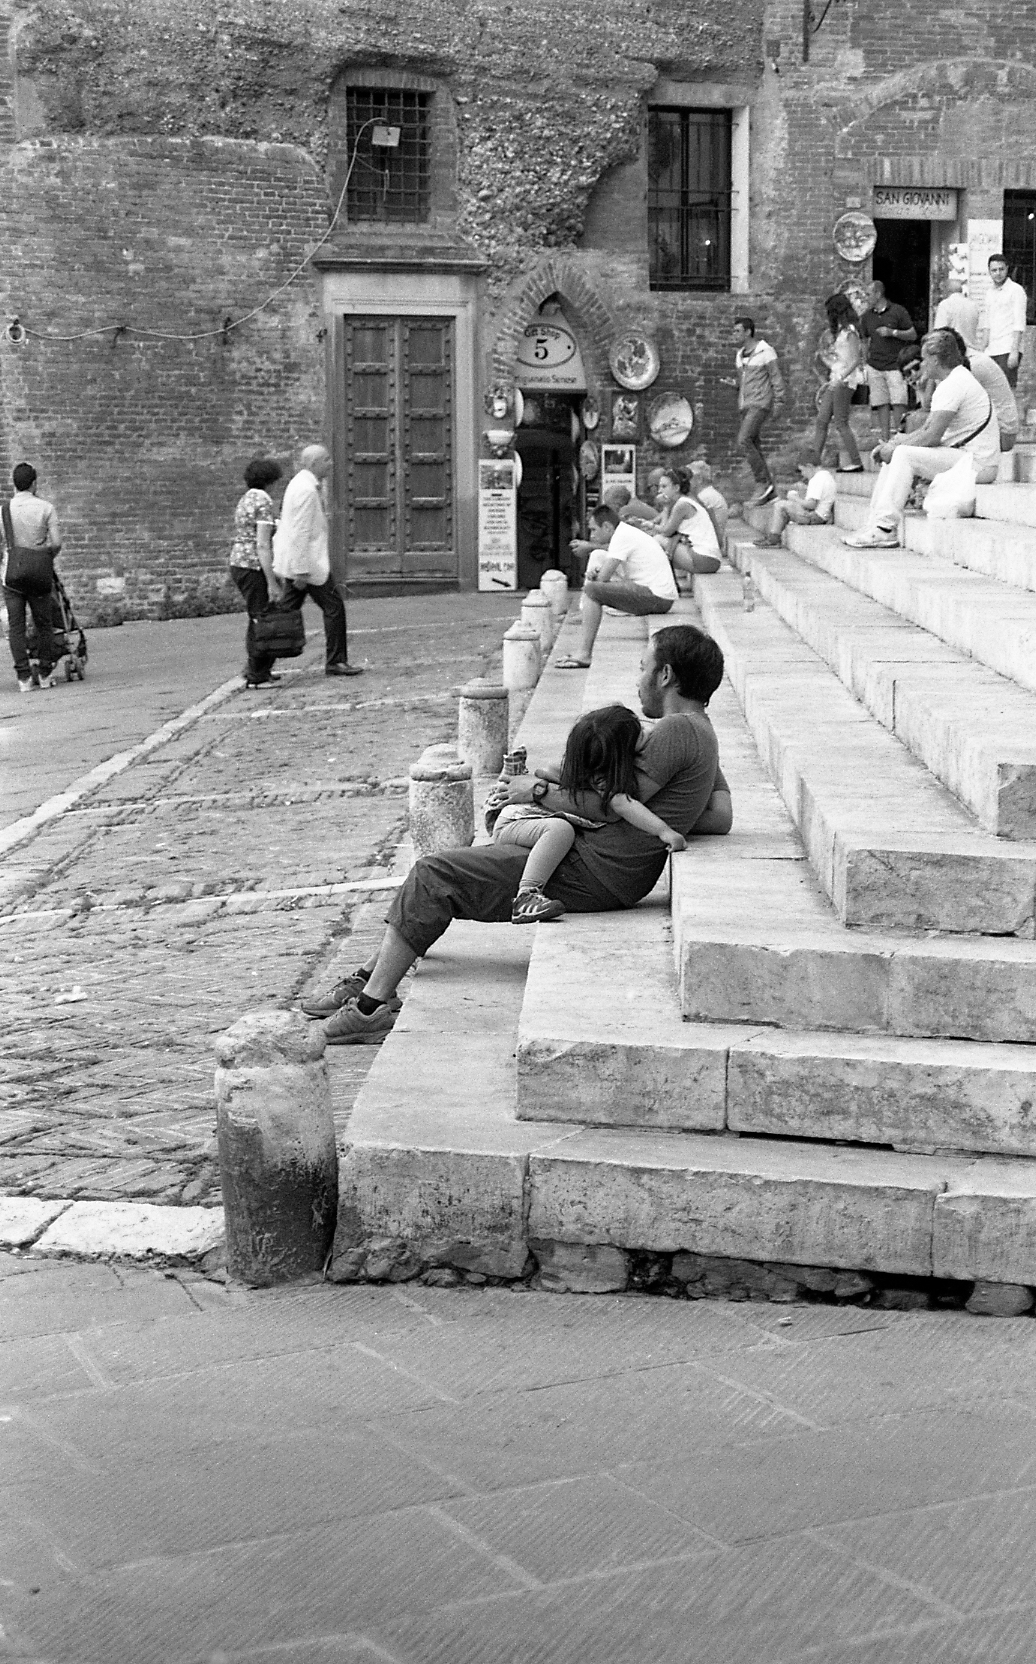 naptime on the steps in Sienna. 35mm.